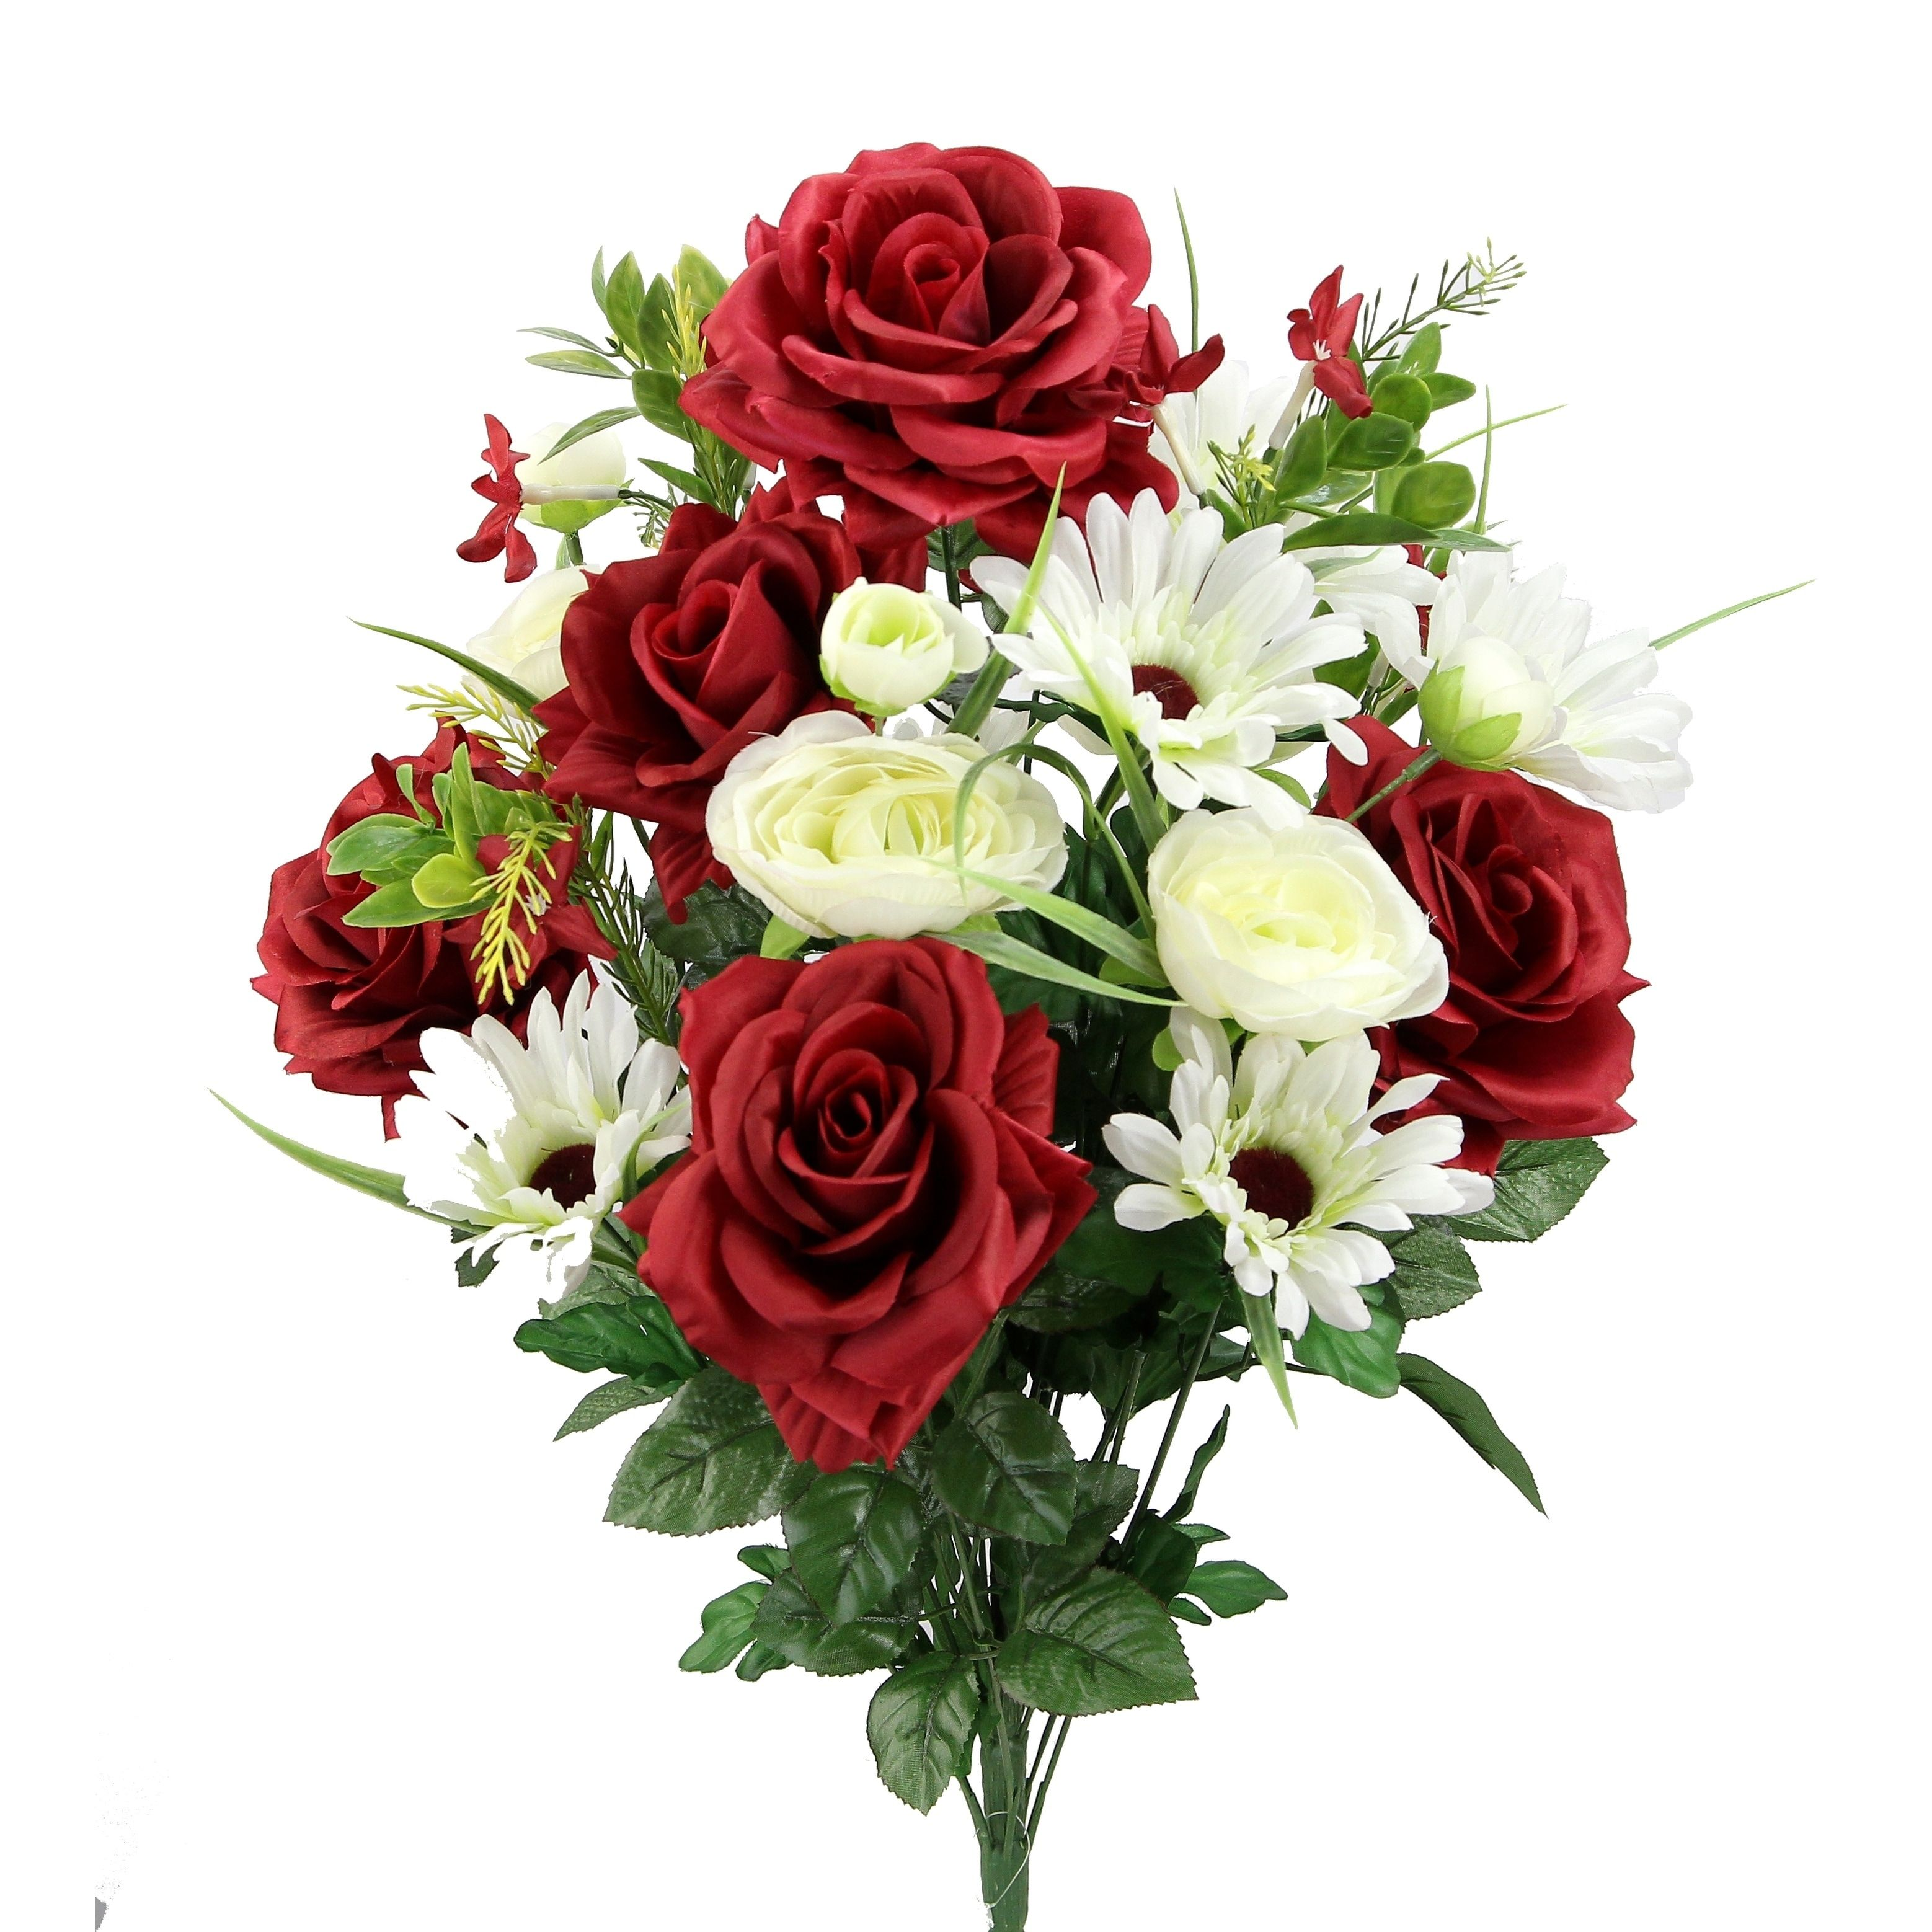 Overstock Com Online Shopping Bedding Furniture Electronics Jewelry Clothing More In 2020 Floral Arrangements Artificial Roses Floral